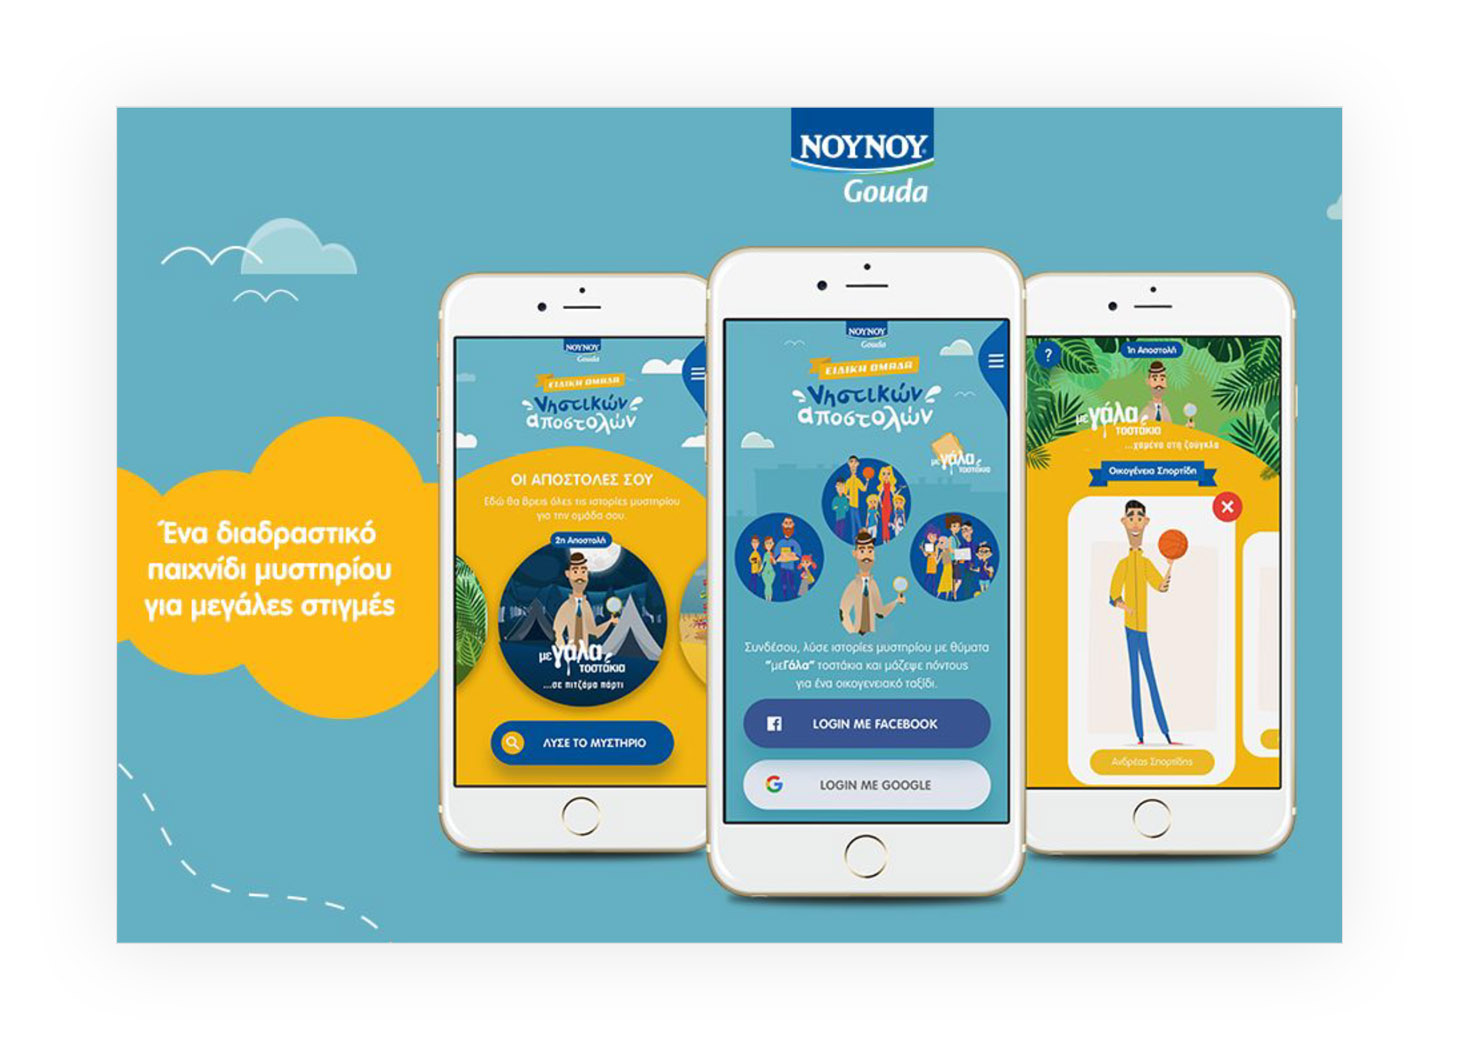 FrieslandCampina: Boosting Content Engagement by 86% With Socialbakers